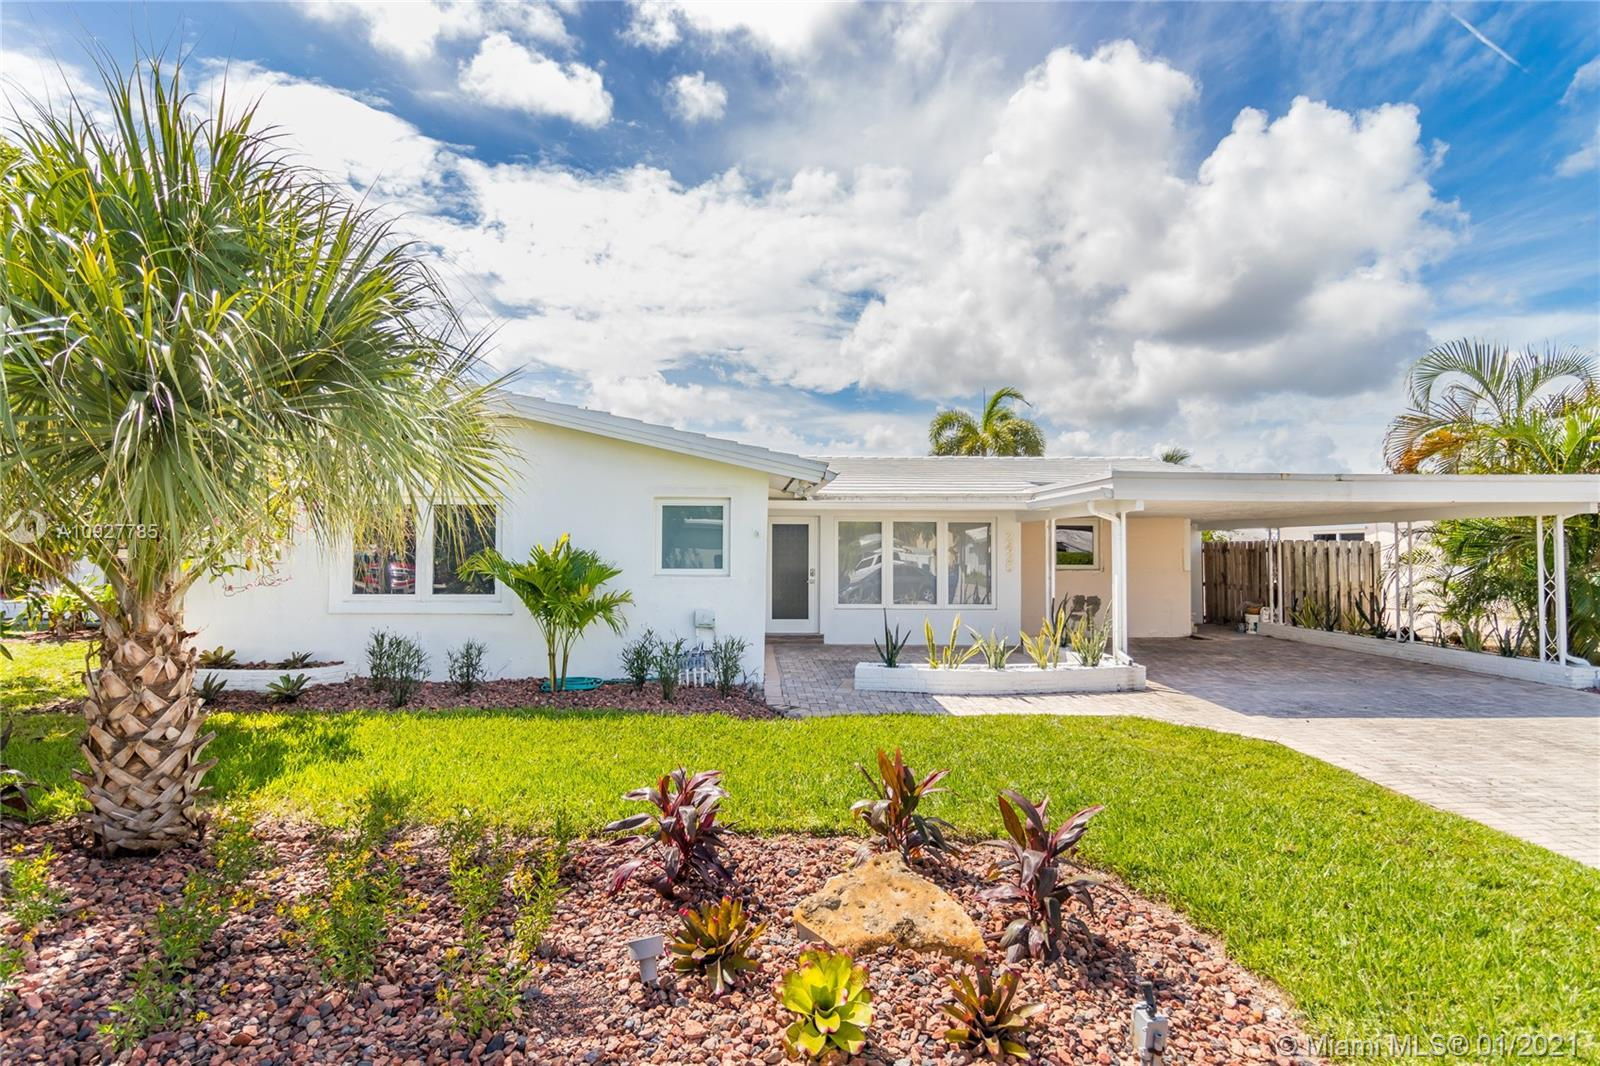 Completely updated 3/2 waterfront home in the sought after East Wilton Manors neighborhood. This amazing home features a deepwater private dock with ocean access, heated pool and hot tub, hurricane impact windows and doors throughout, new gorgeous modern kitchen with stainless steel appliances, stone counters, electric blinds, 2 car carport, laundry room, three spacious bedrooms, plenty of storage and more! Located at just a quick drive to everything Wilton Manors has to offer including Wilton Drive, Restaurants, shops, grocery stores, US1 and the beach! Perfect as a vacation home, full time residence or vacation rental!